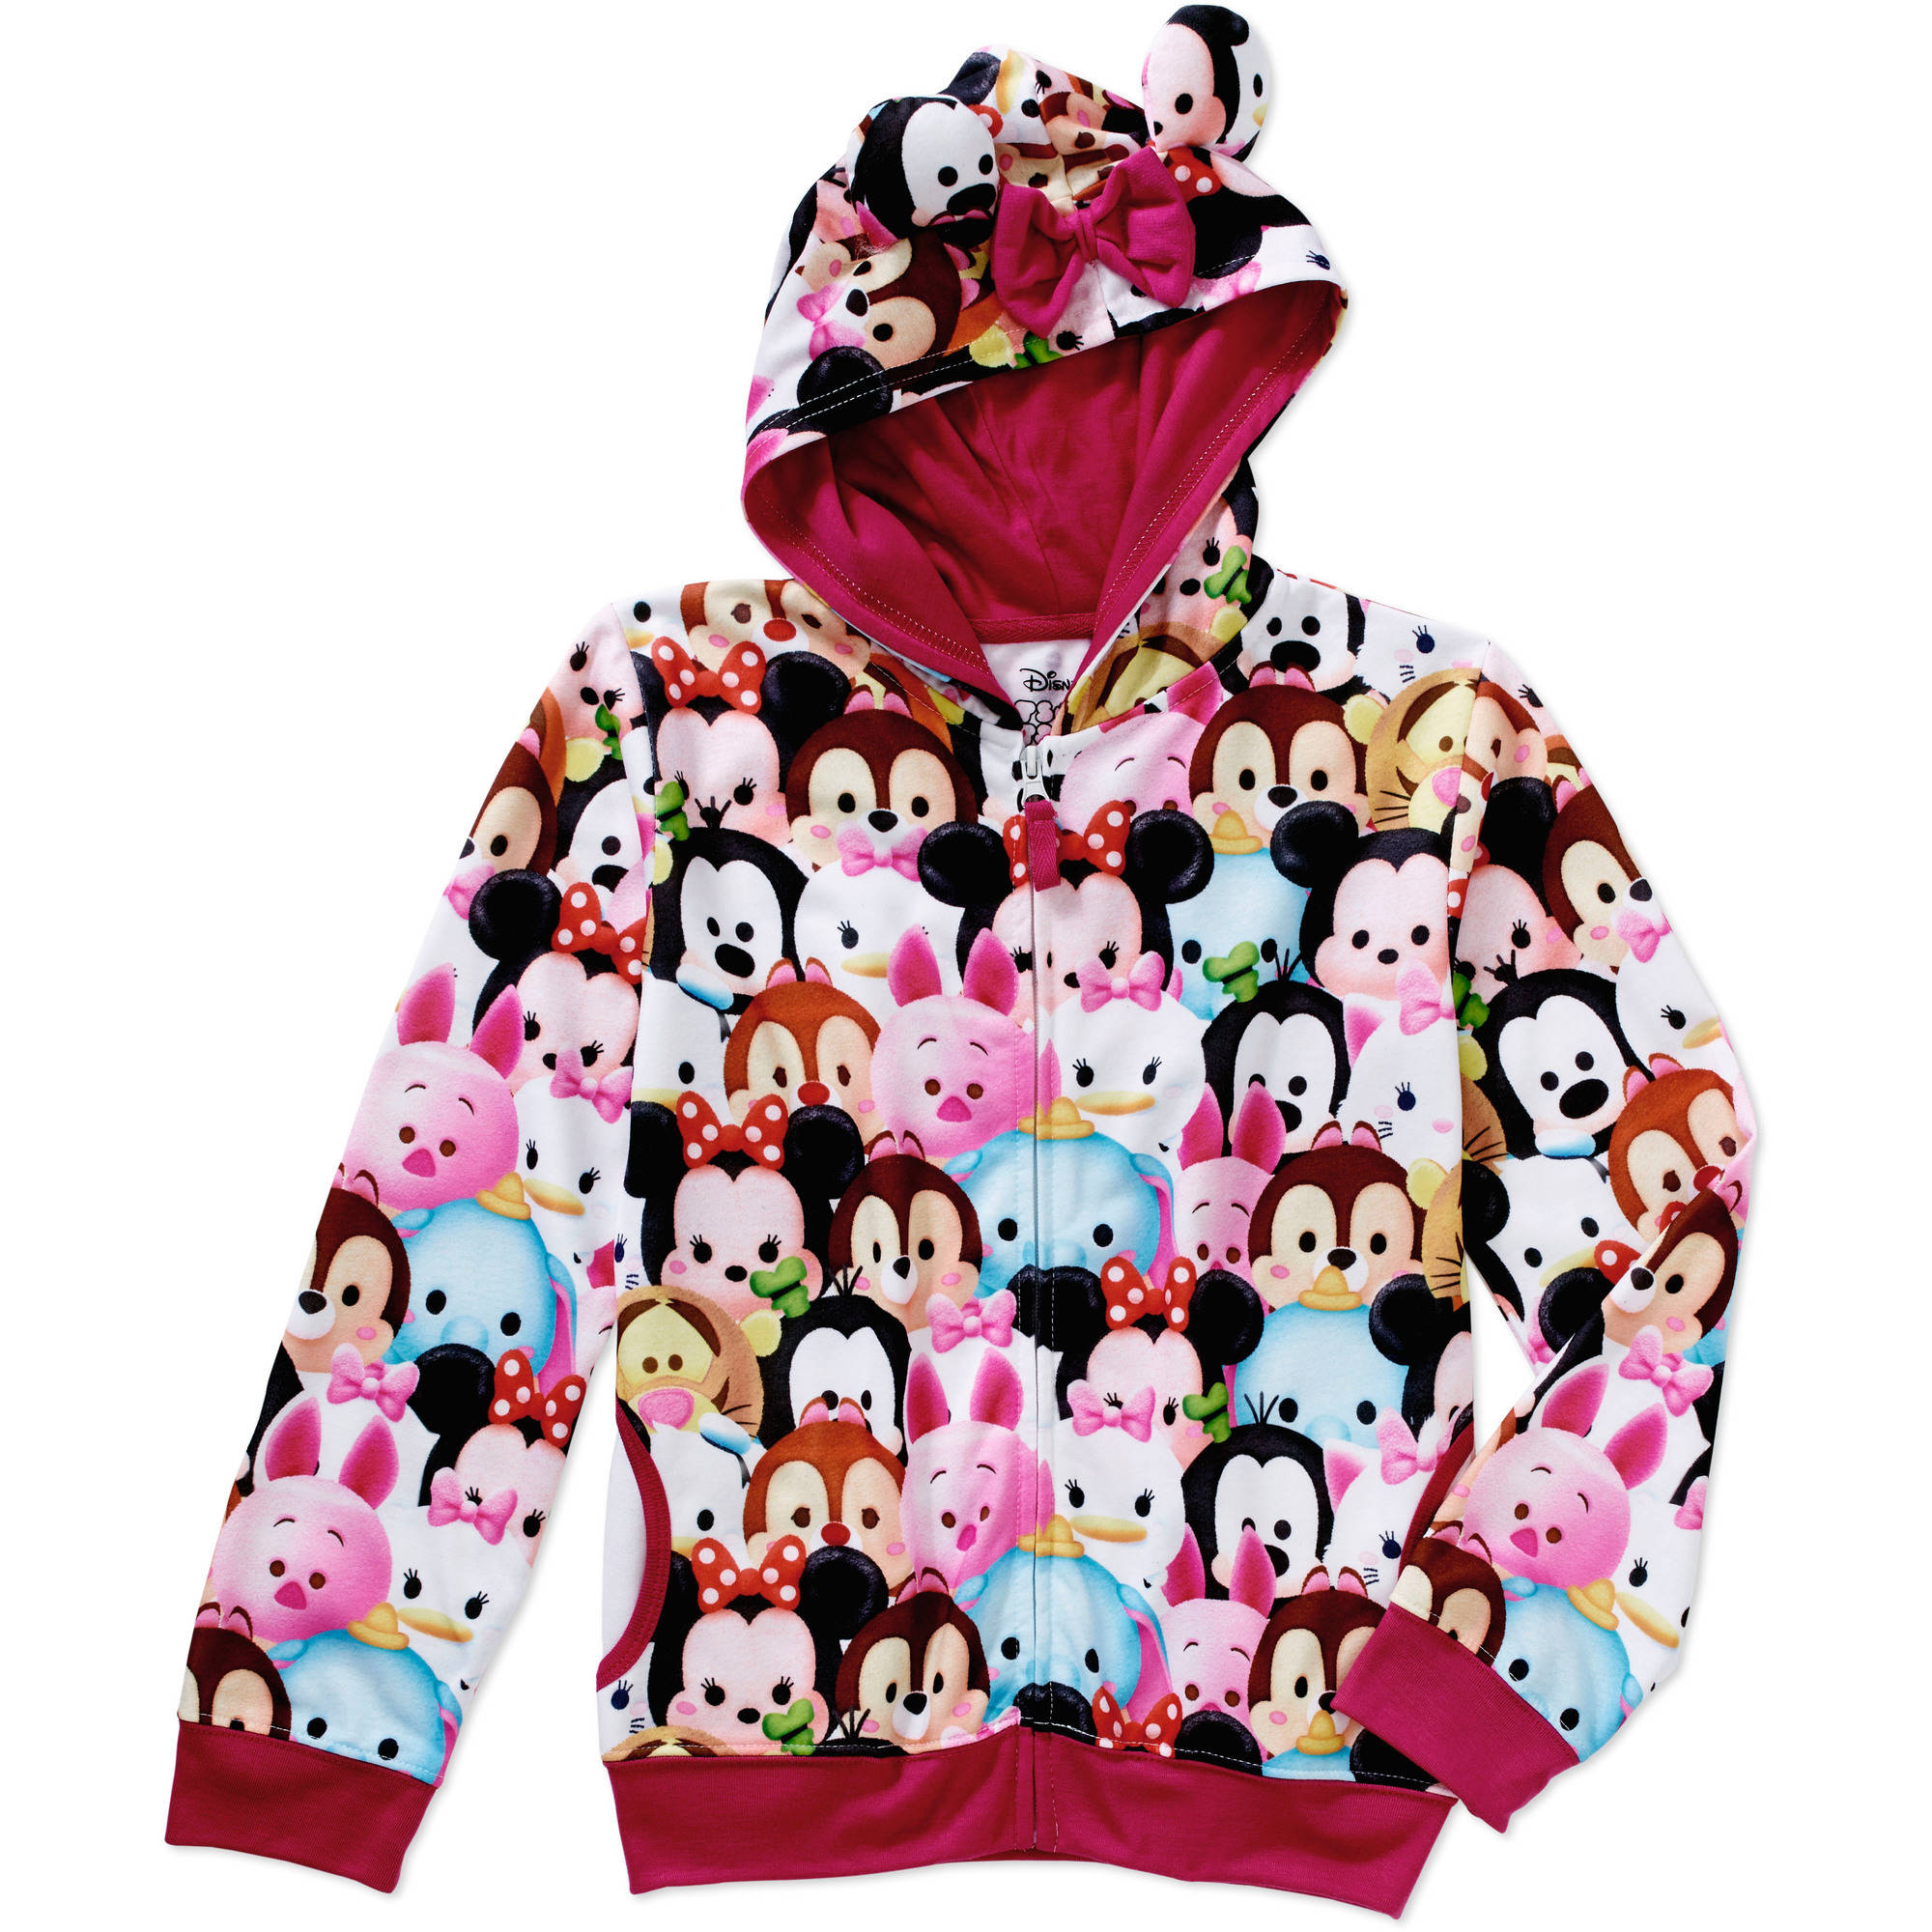 Tsum Tsum Girls' Character Collage Sublimated Zip Up Hoodie with Bow & Ears on Hood